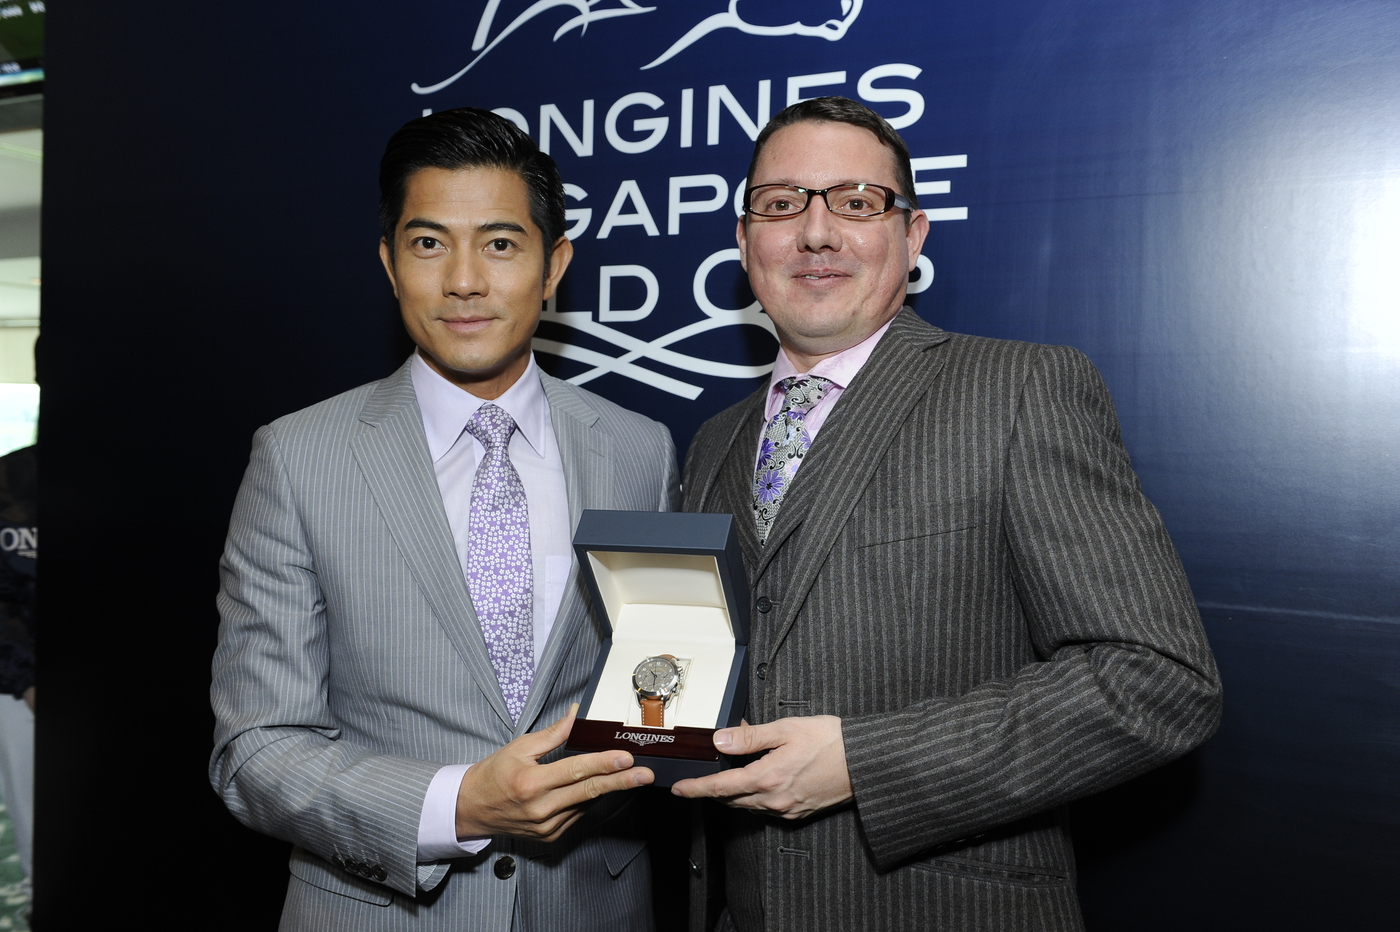 Longines Flat Racing Event: LONGINES SINGAPORE GOLD CUP 2011 raises S$241,136 for the Chaoyang School 10